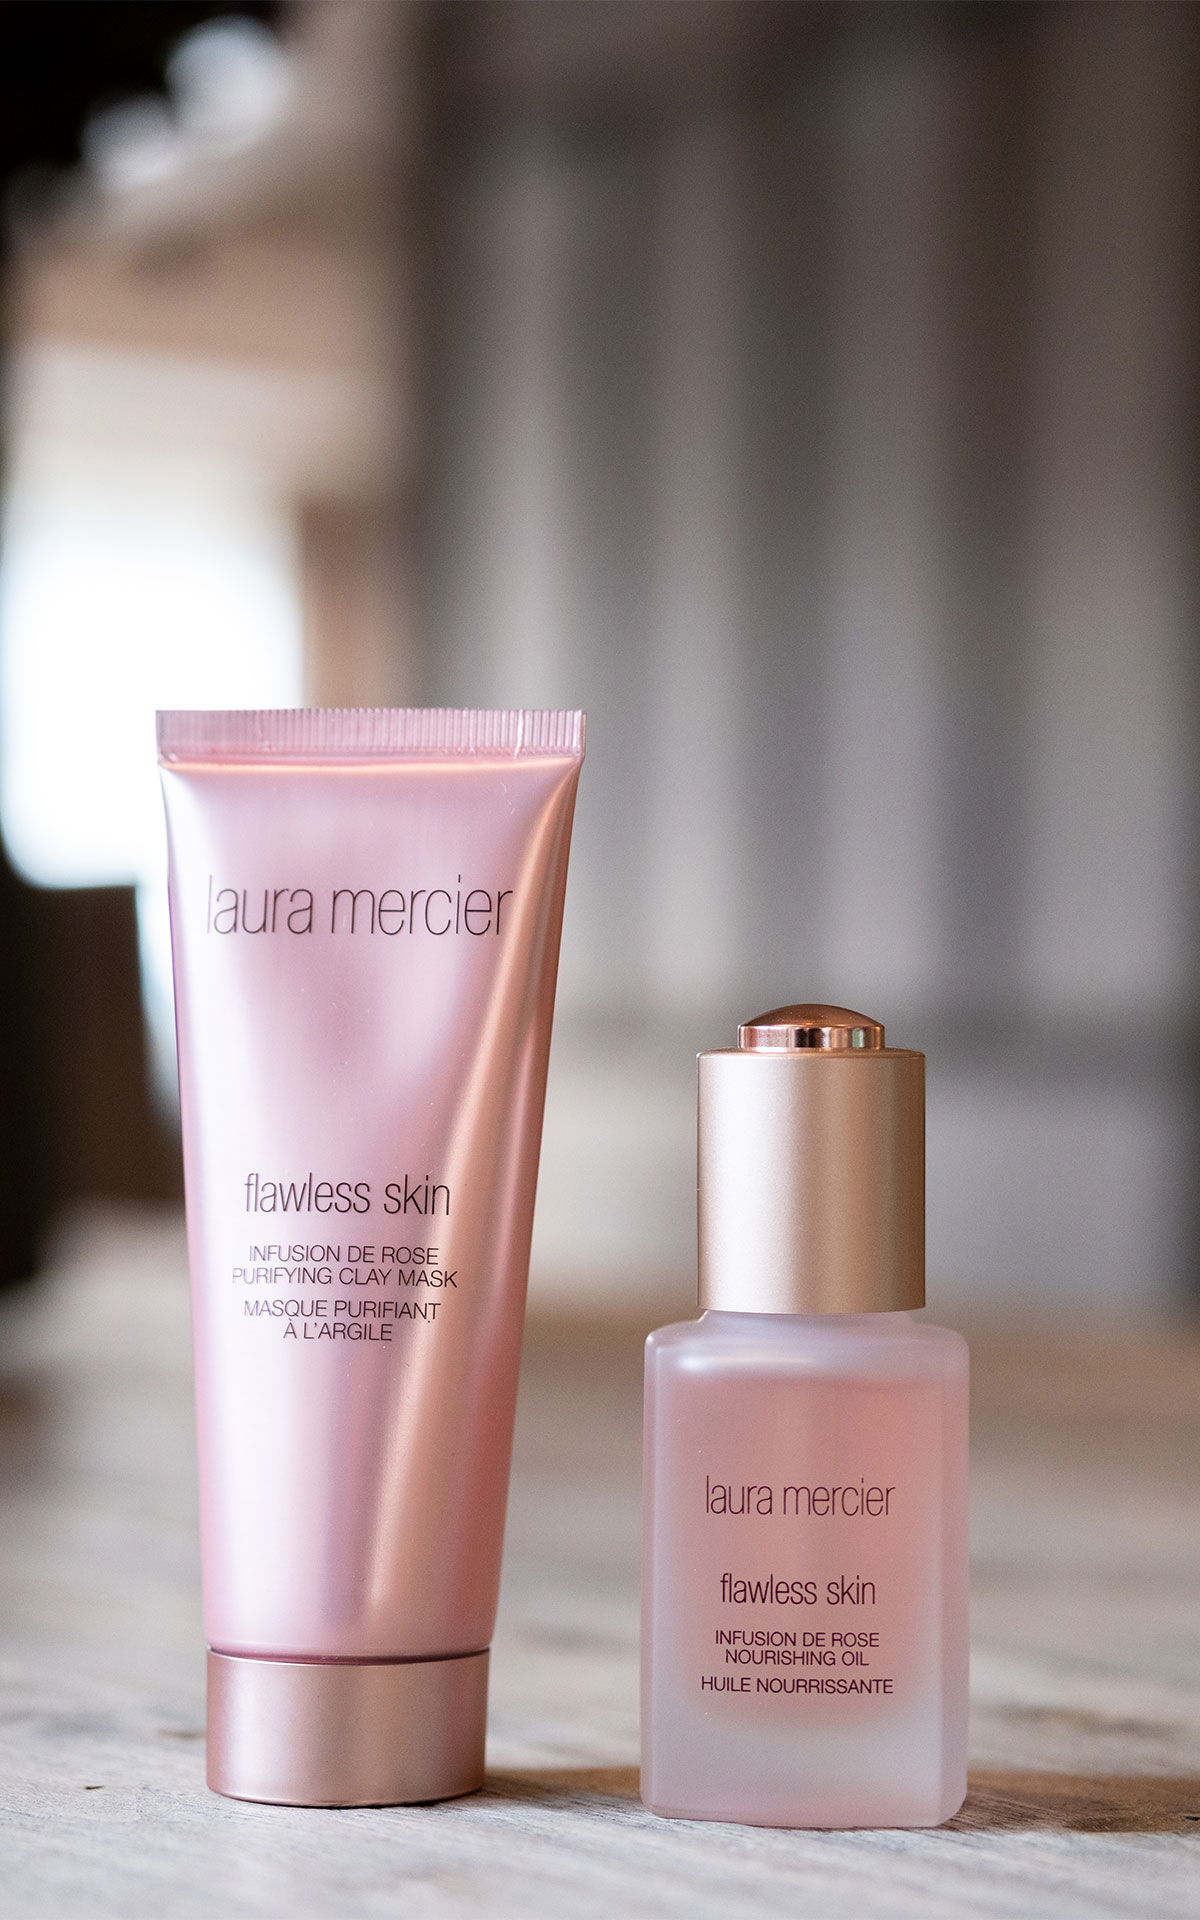 Beaute Prestige International Laura Mercier Flawless skin from Bicester Village